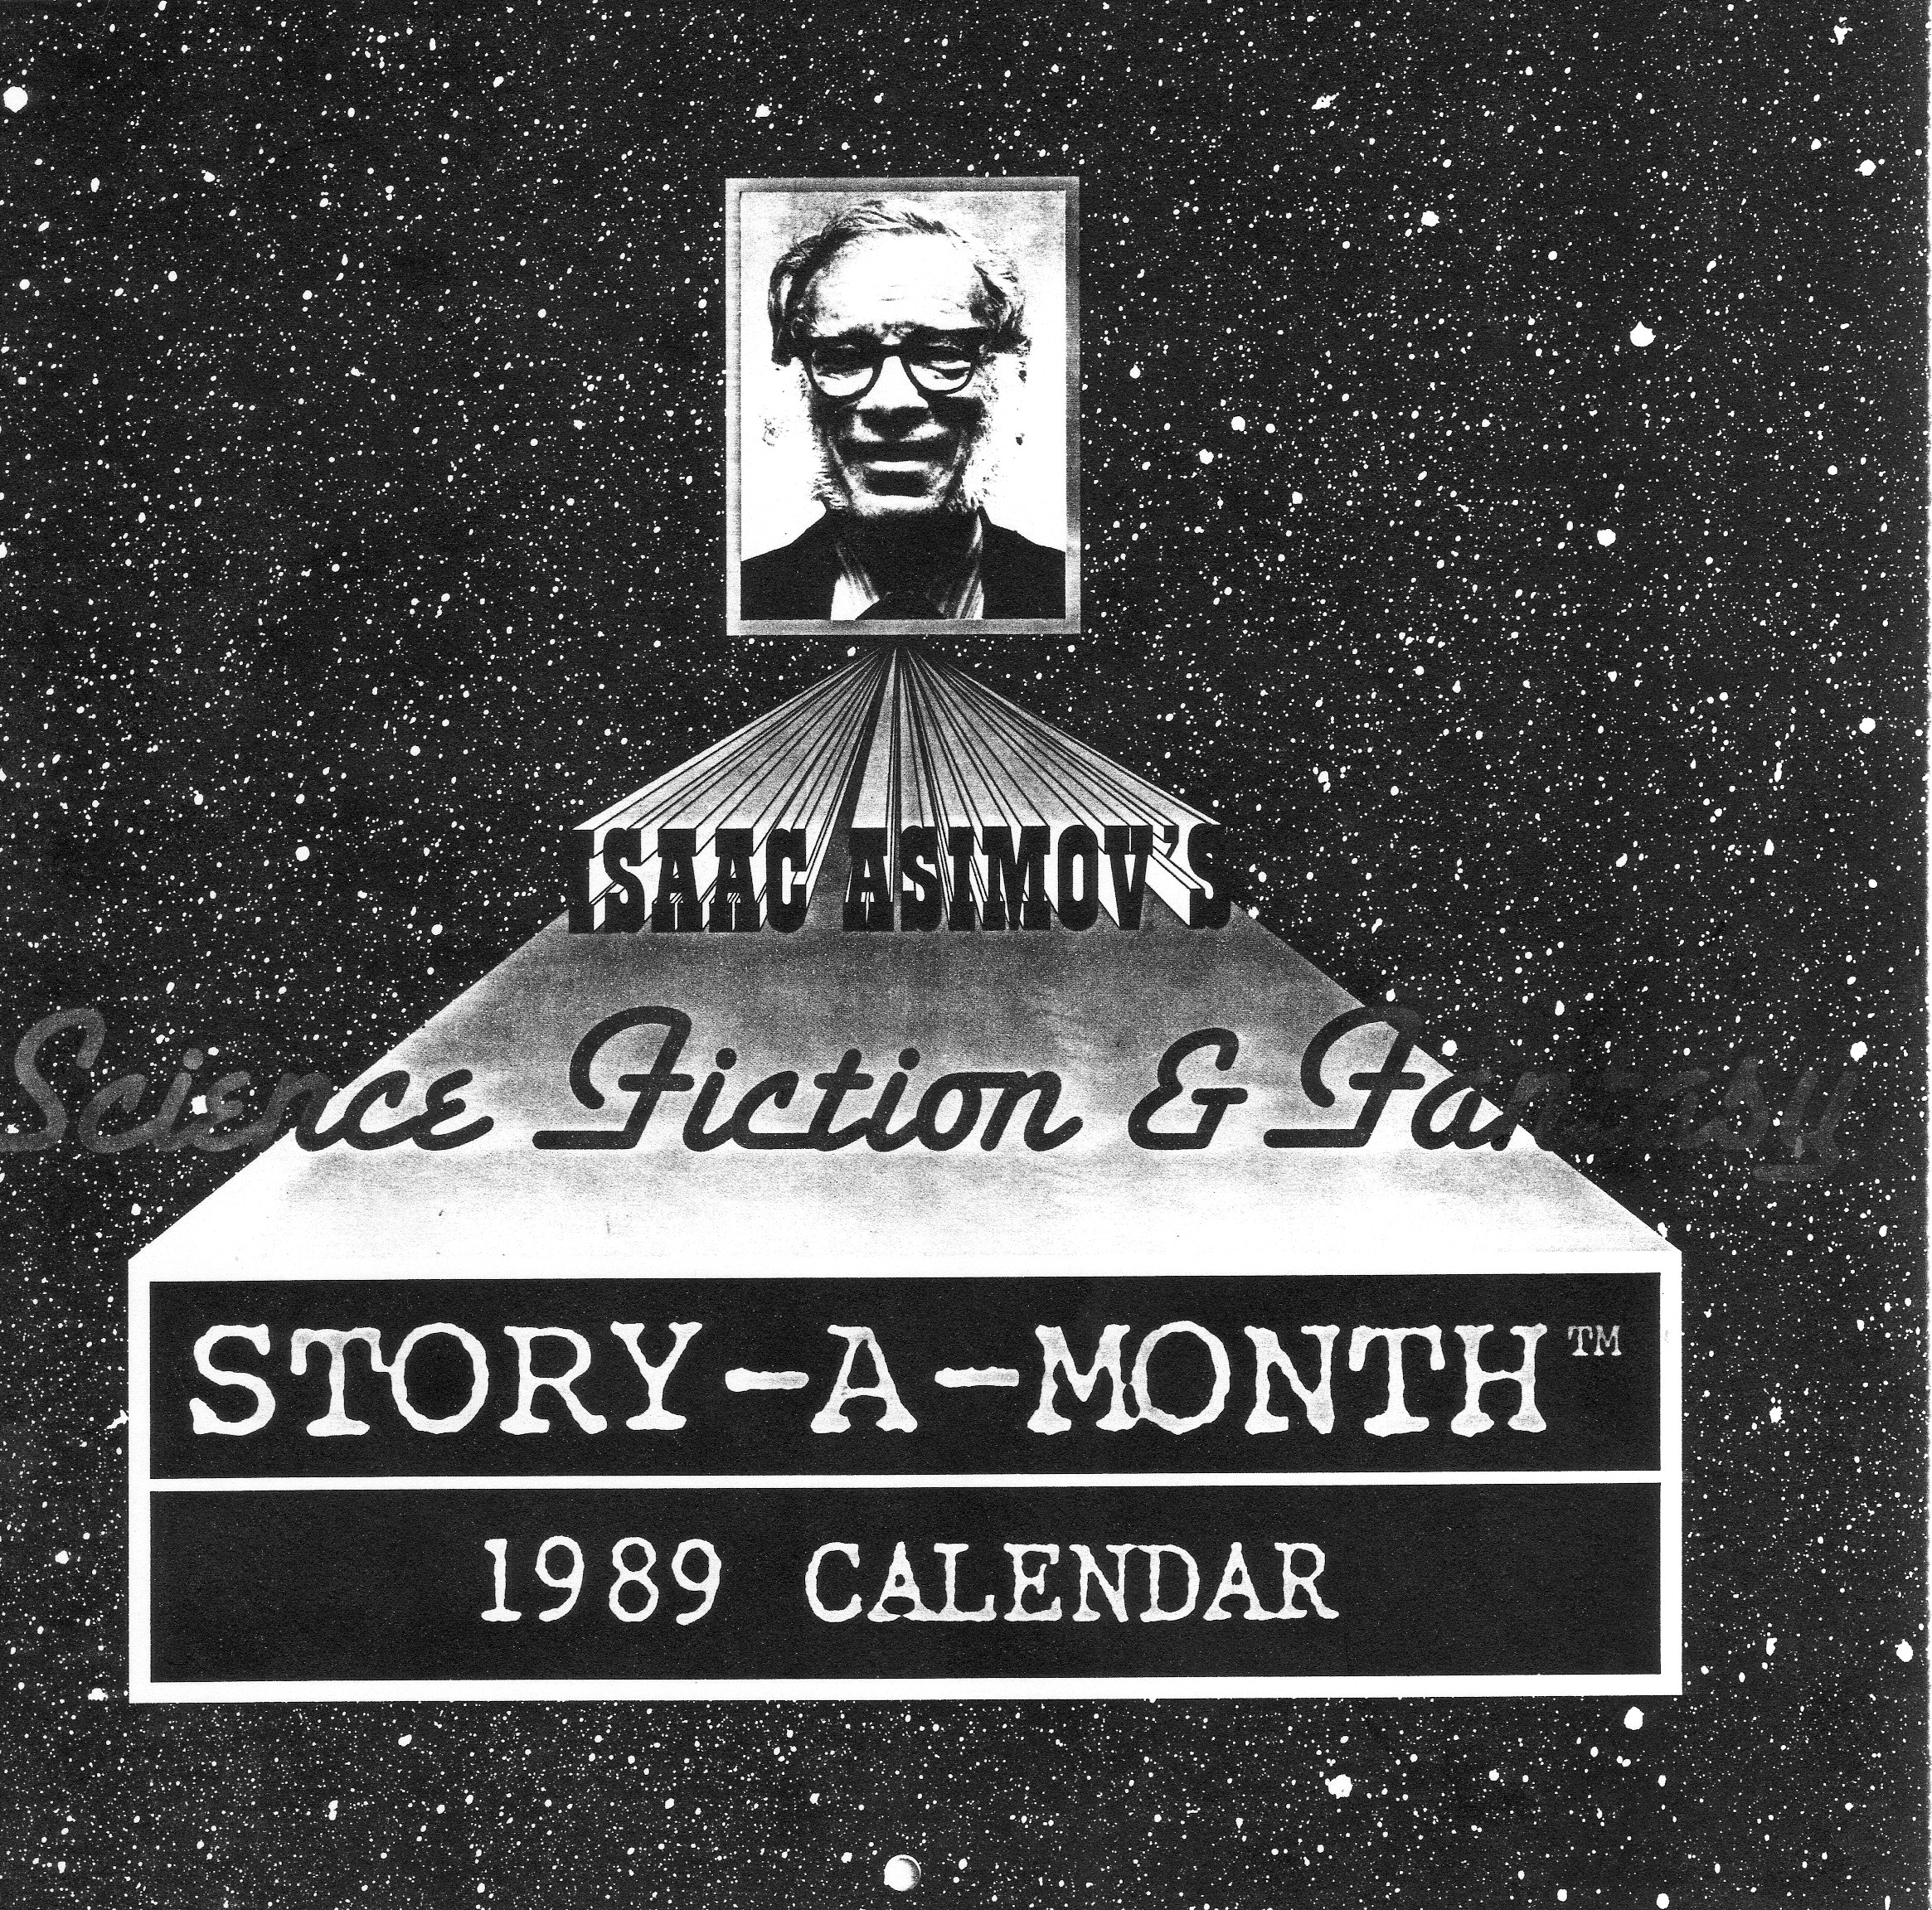 Isaac Asimov's Science Fiction and Fantasy Story-a-Month 1989 Calendar